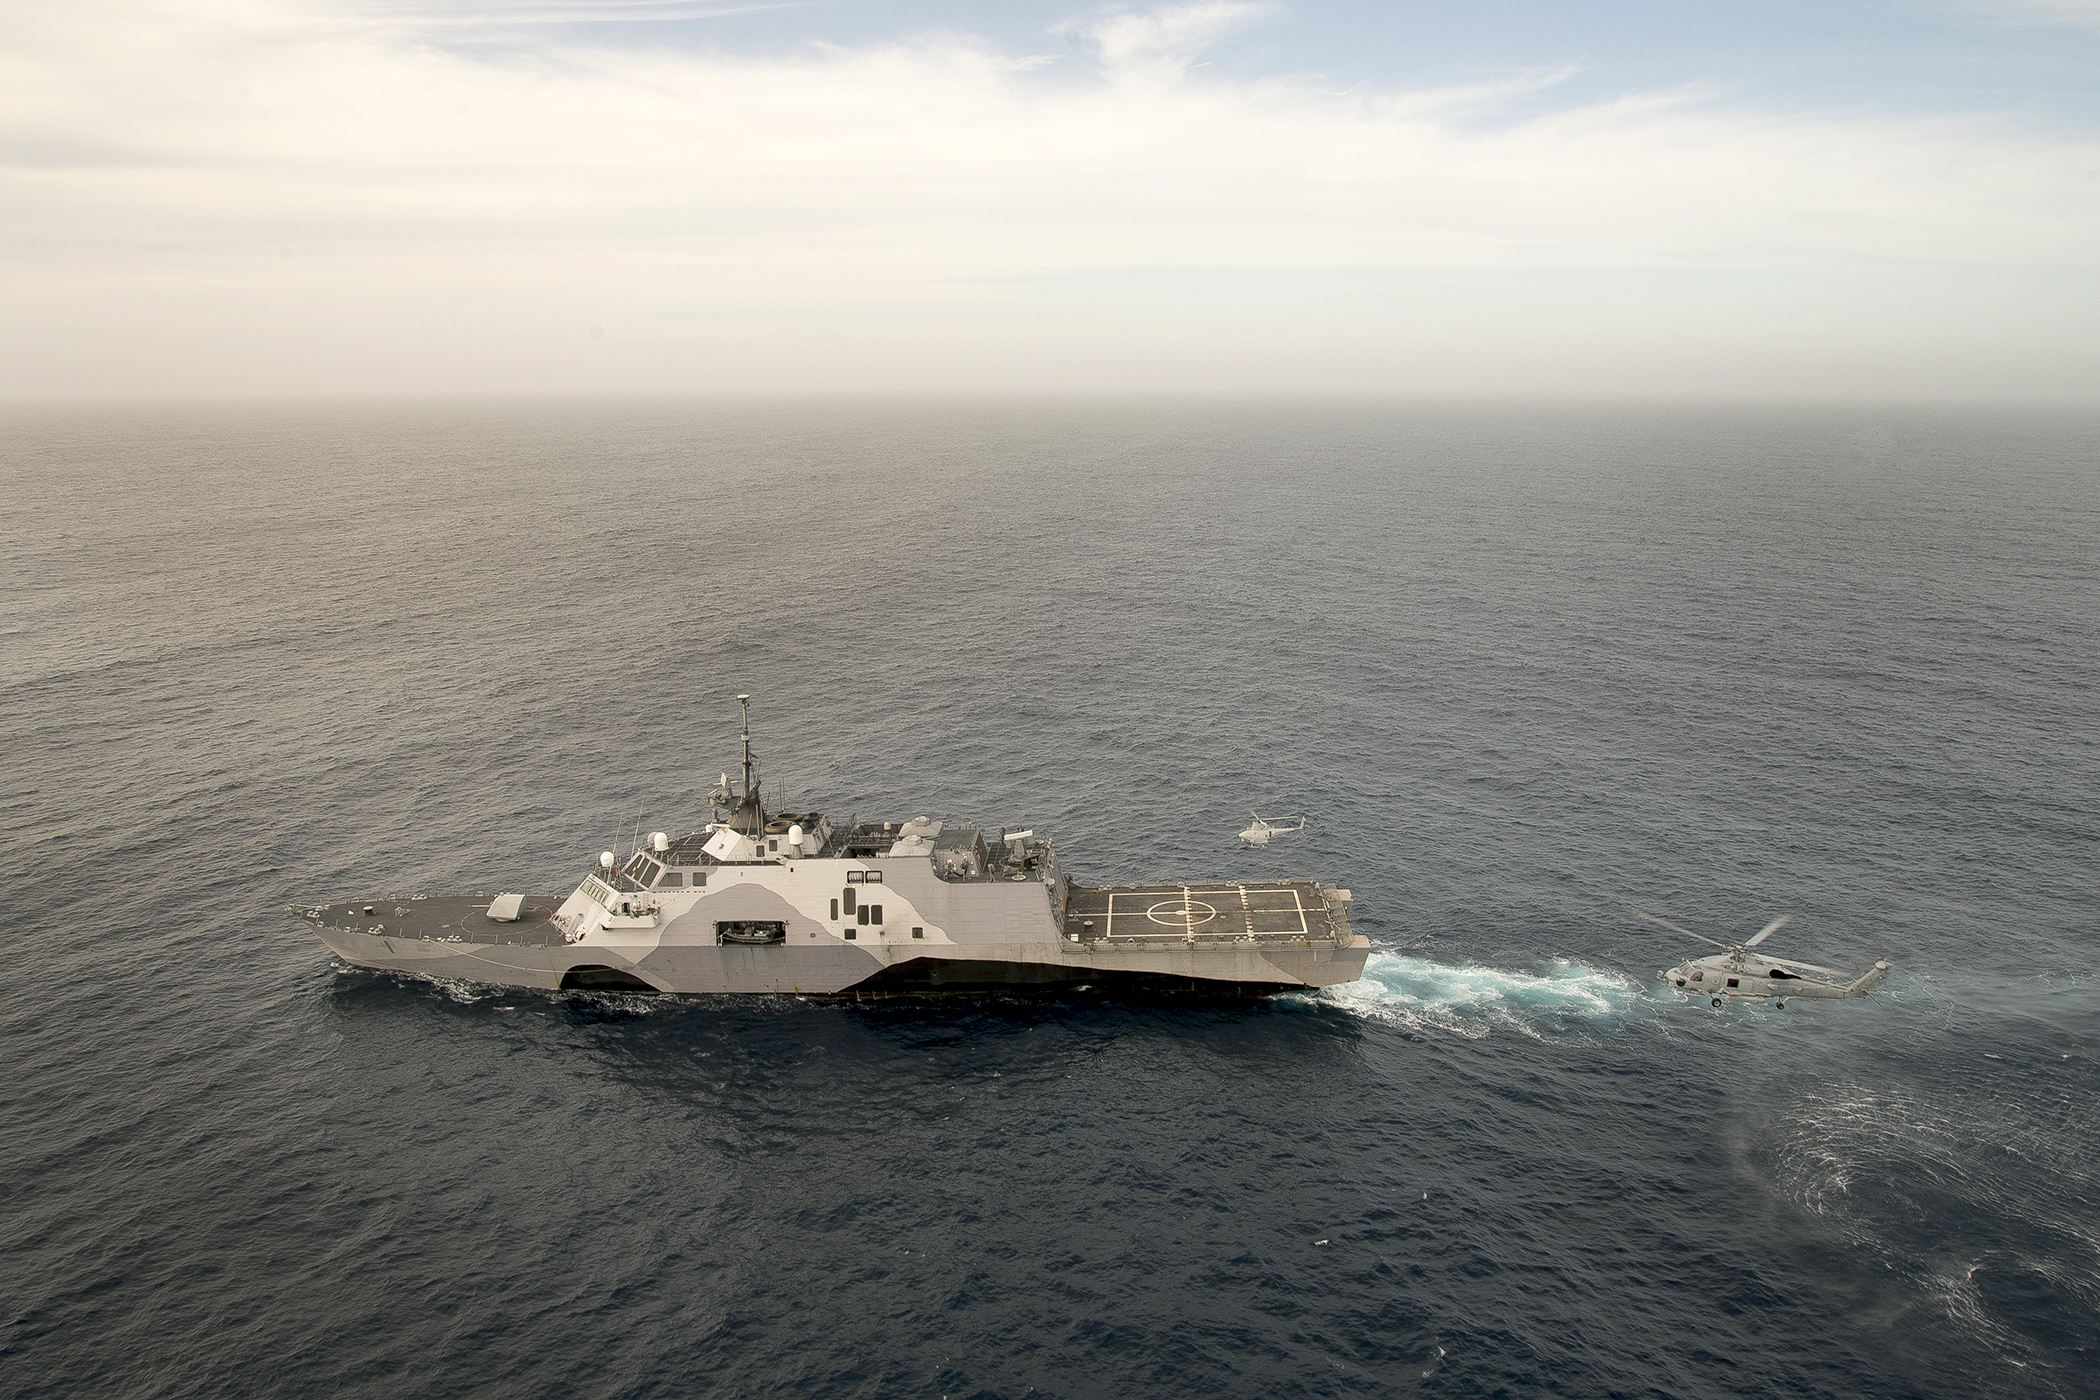 Fourth breakdown in US Navy littoral combat ship